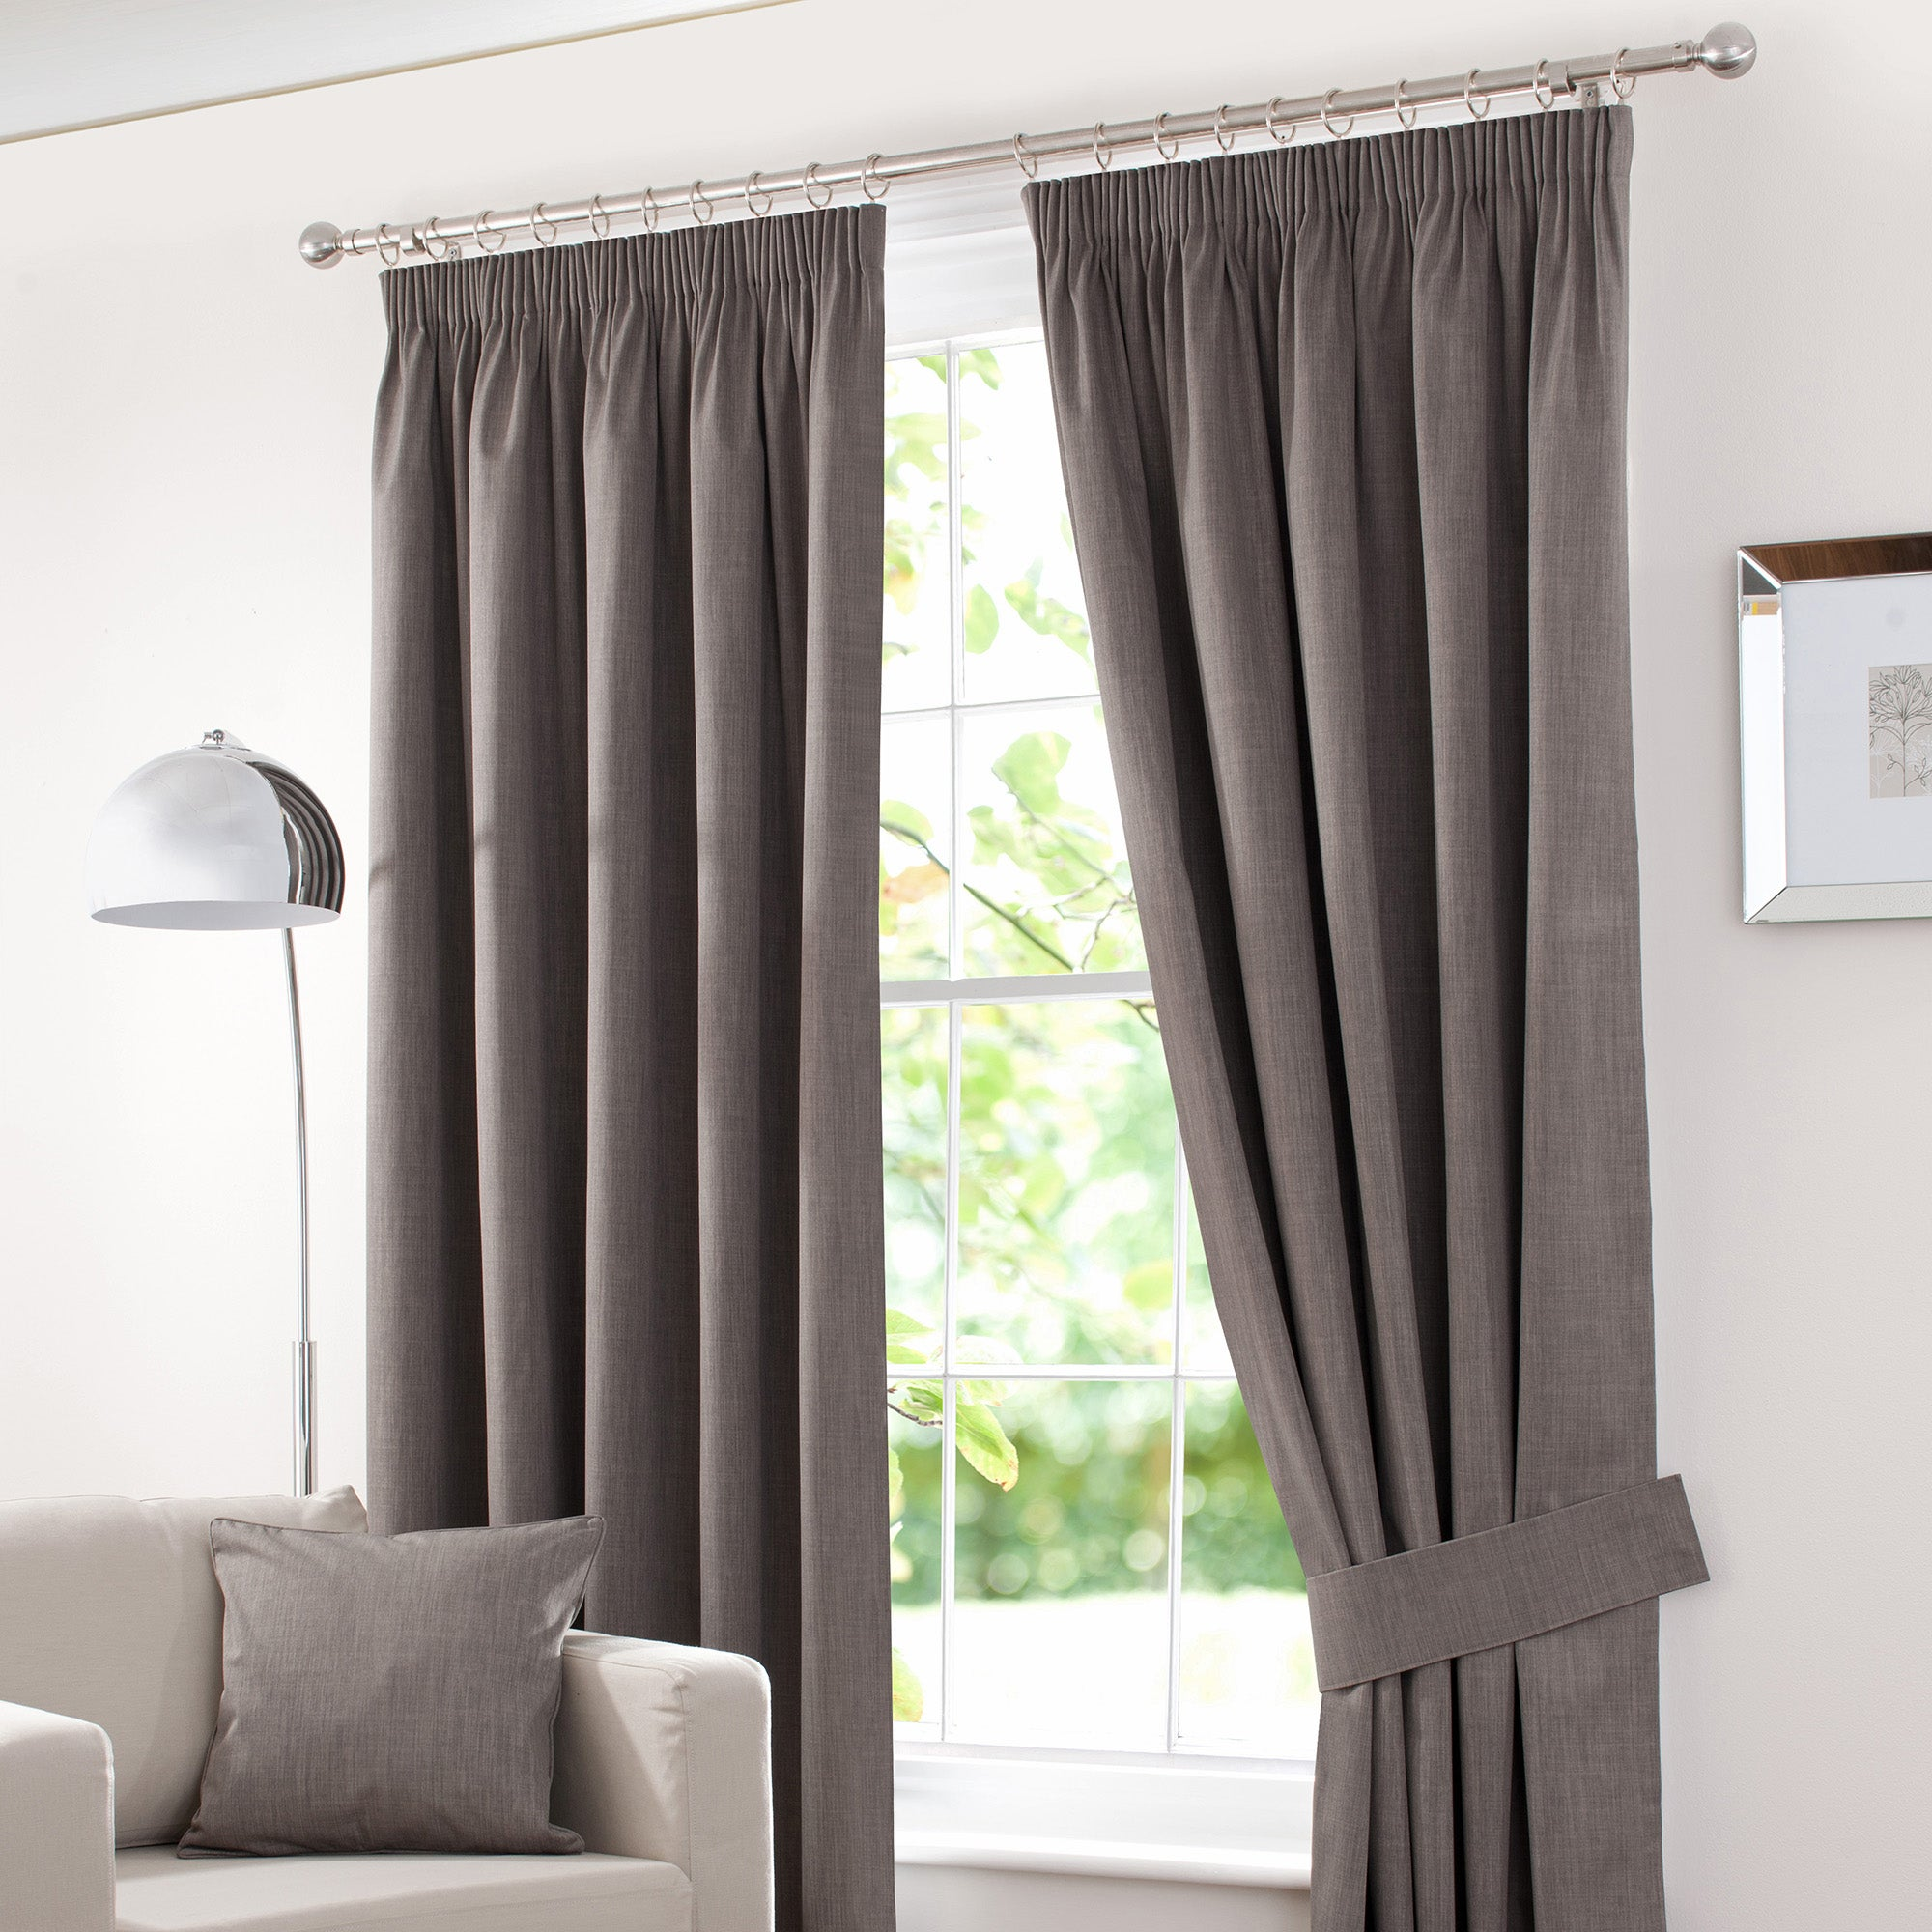 Waters and Noble Stone Solar Blackout Curtain Collection